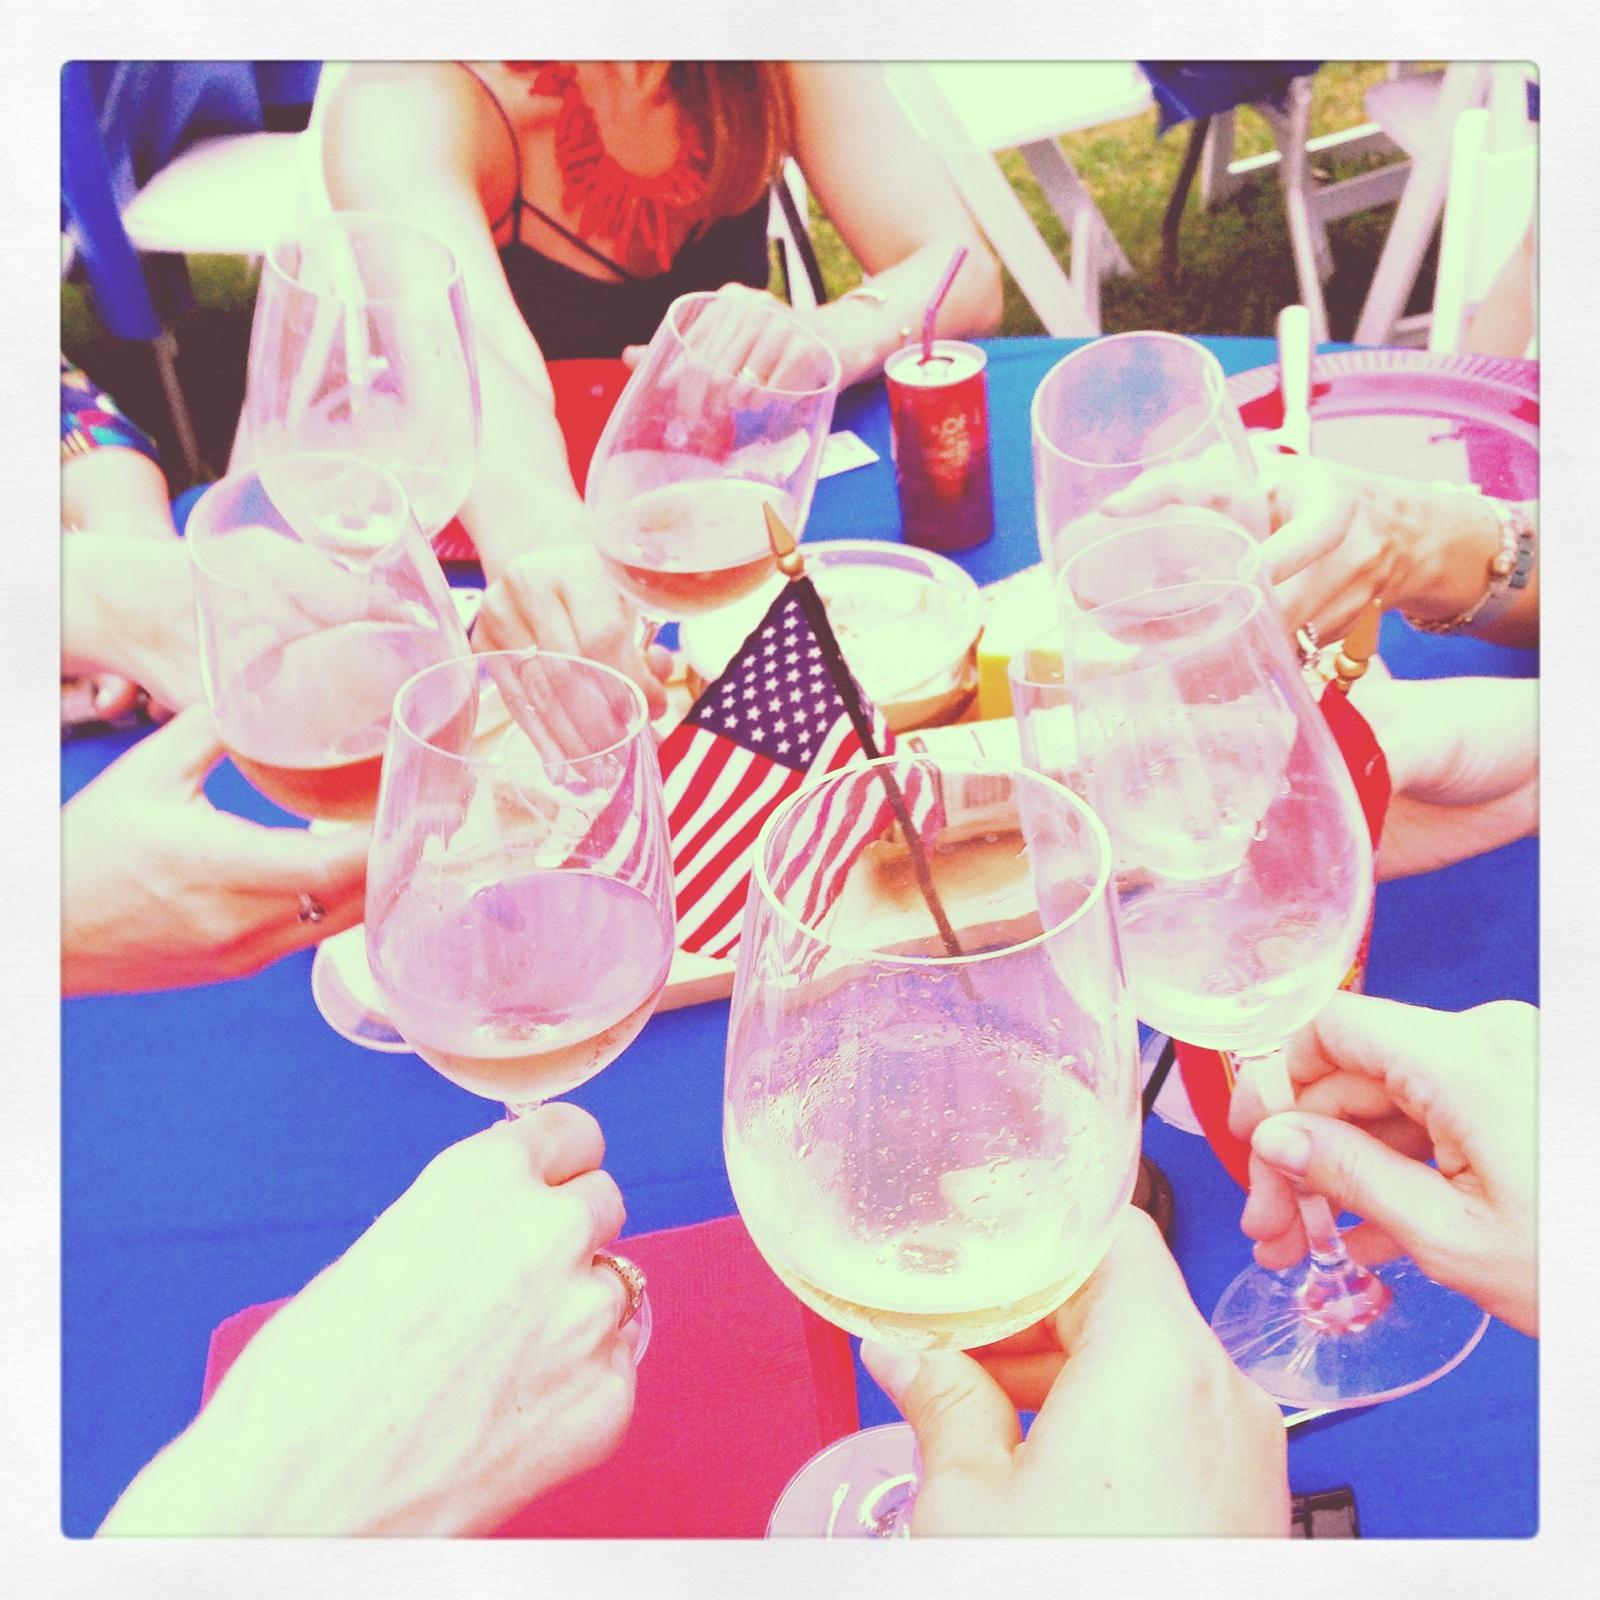 Cheers to great friends, great music and to this great country we call home!